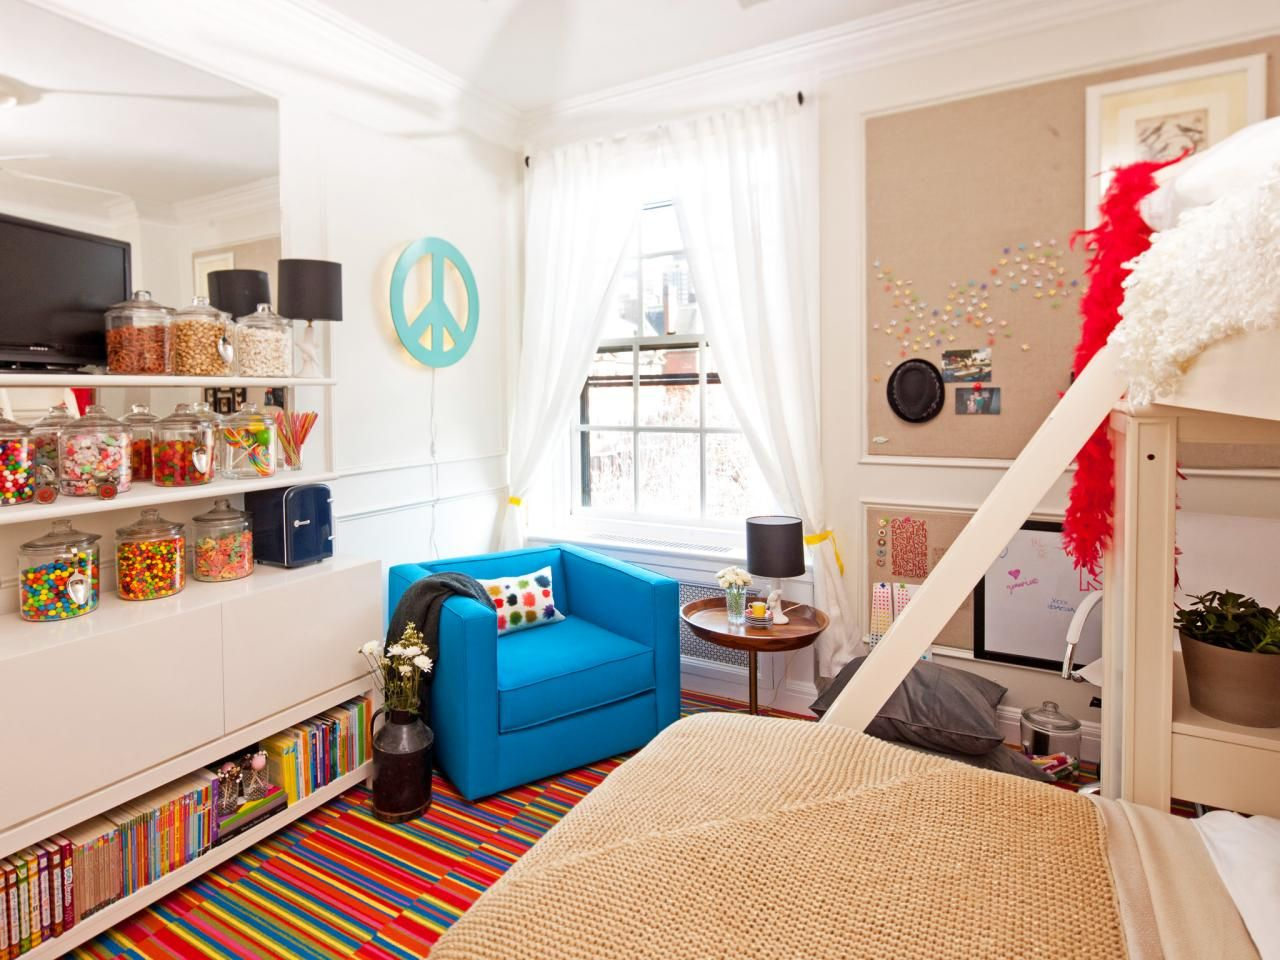 eclectic teen rooms kids room ideas for playroom bedroom bathroom httpwwwhgtvcomdesignroomskid roomseclectic teen rooms picturessoc